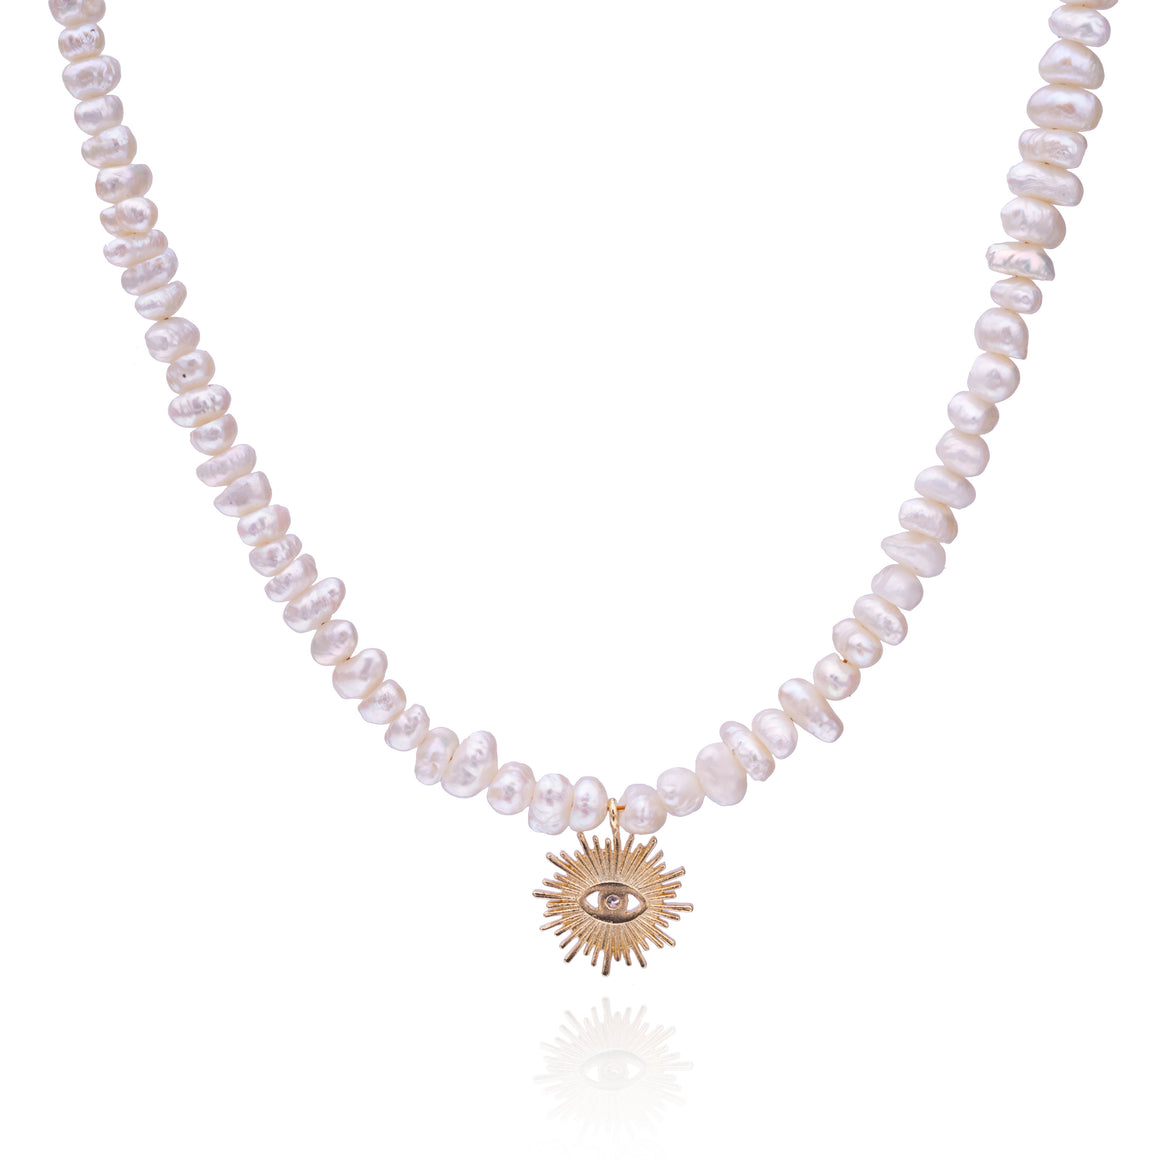 Light of Protection Pearl Necklace